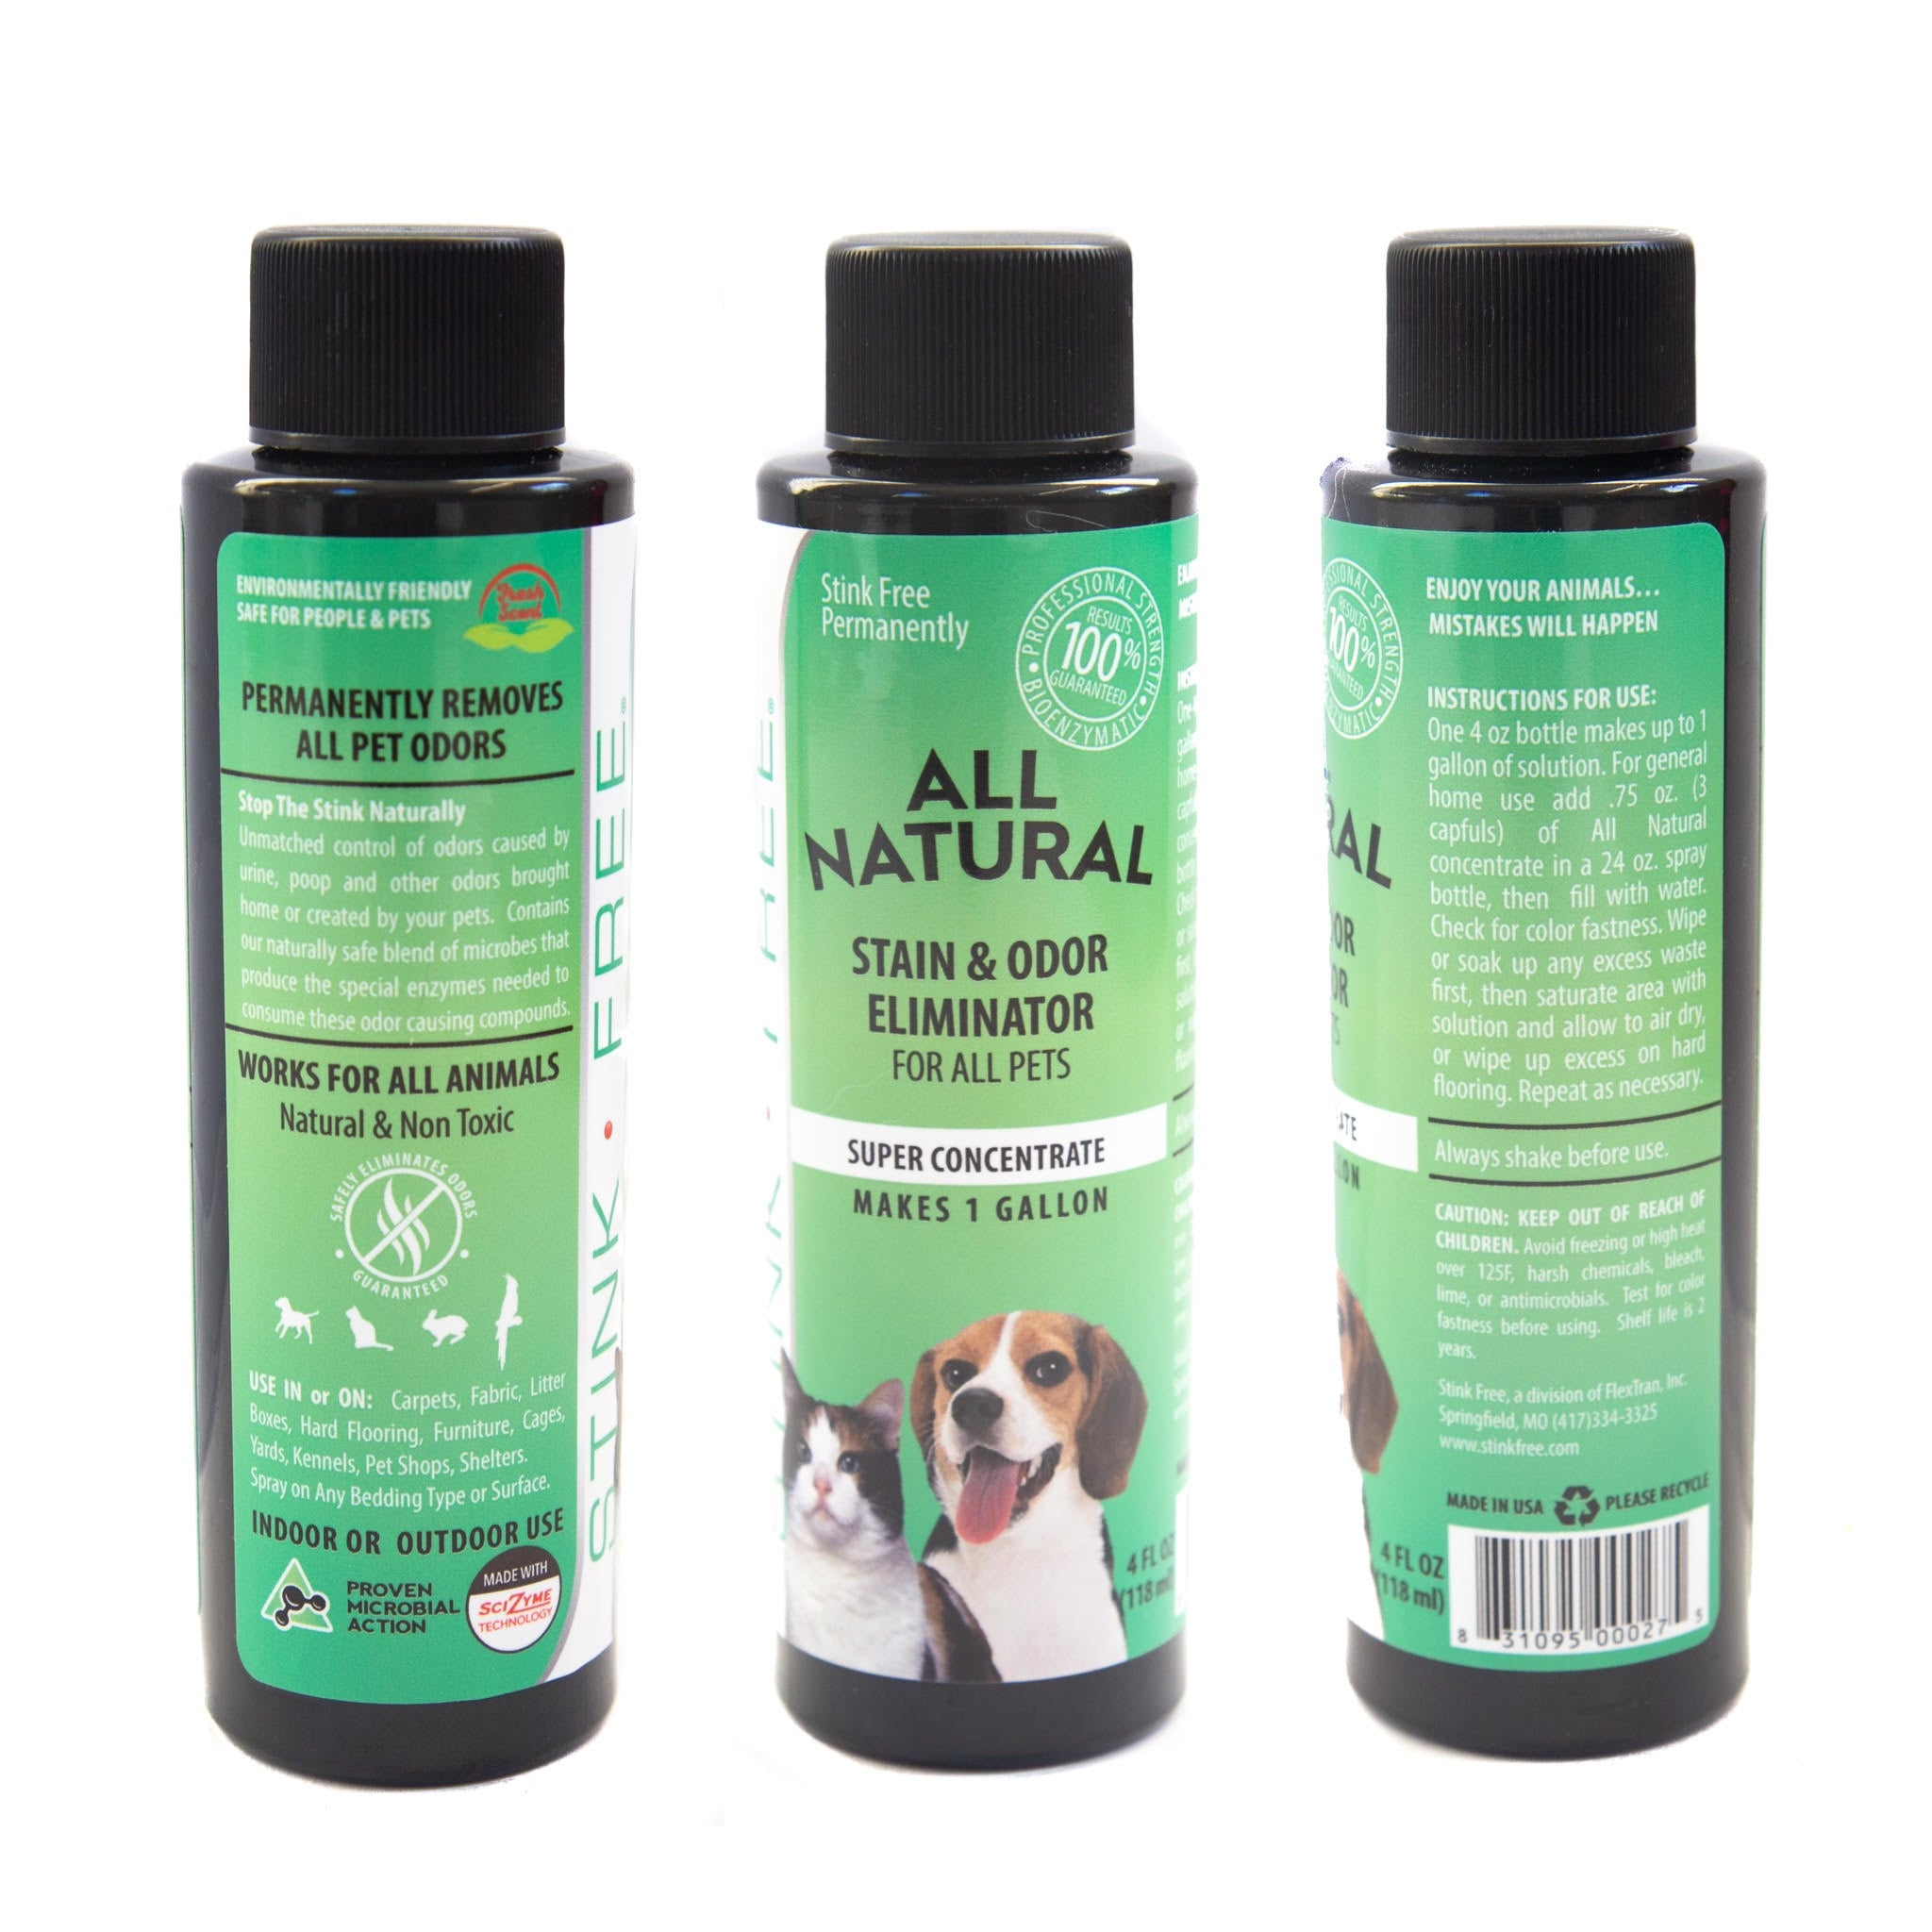 All Natural Stain & Urine Odor Eliminator for Pets, Makes 1 Gallon of Solution (Empty 24 oz. Sprayer Included)